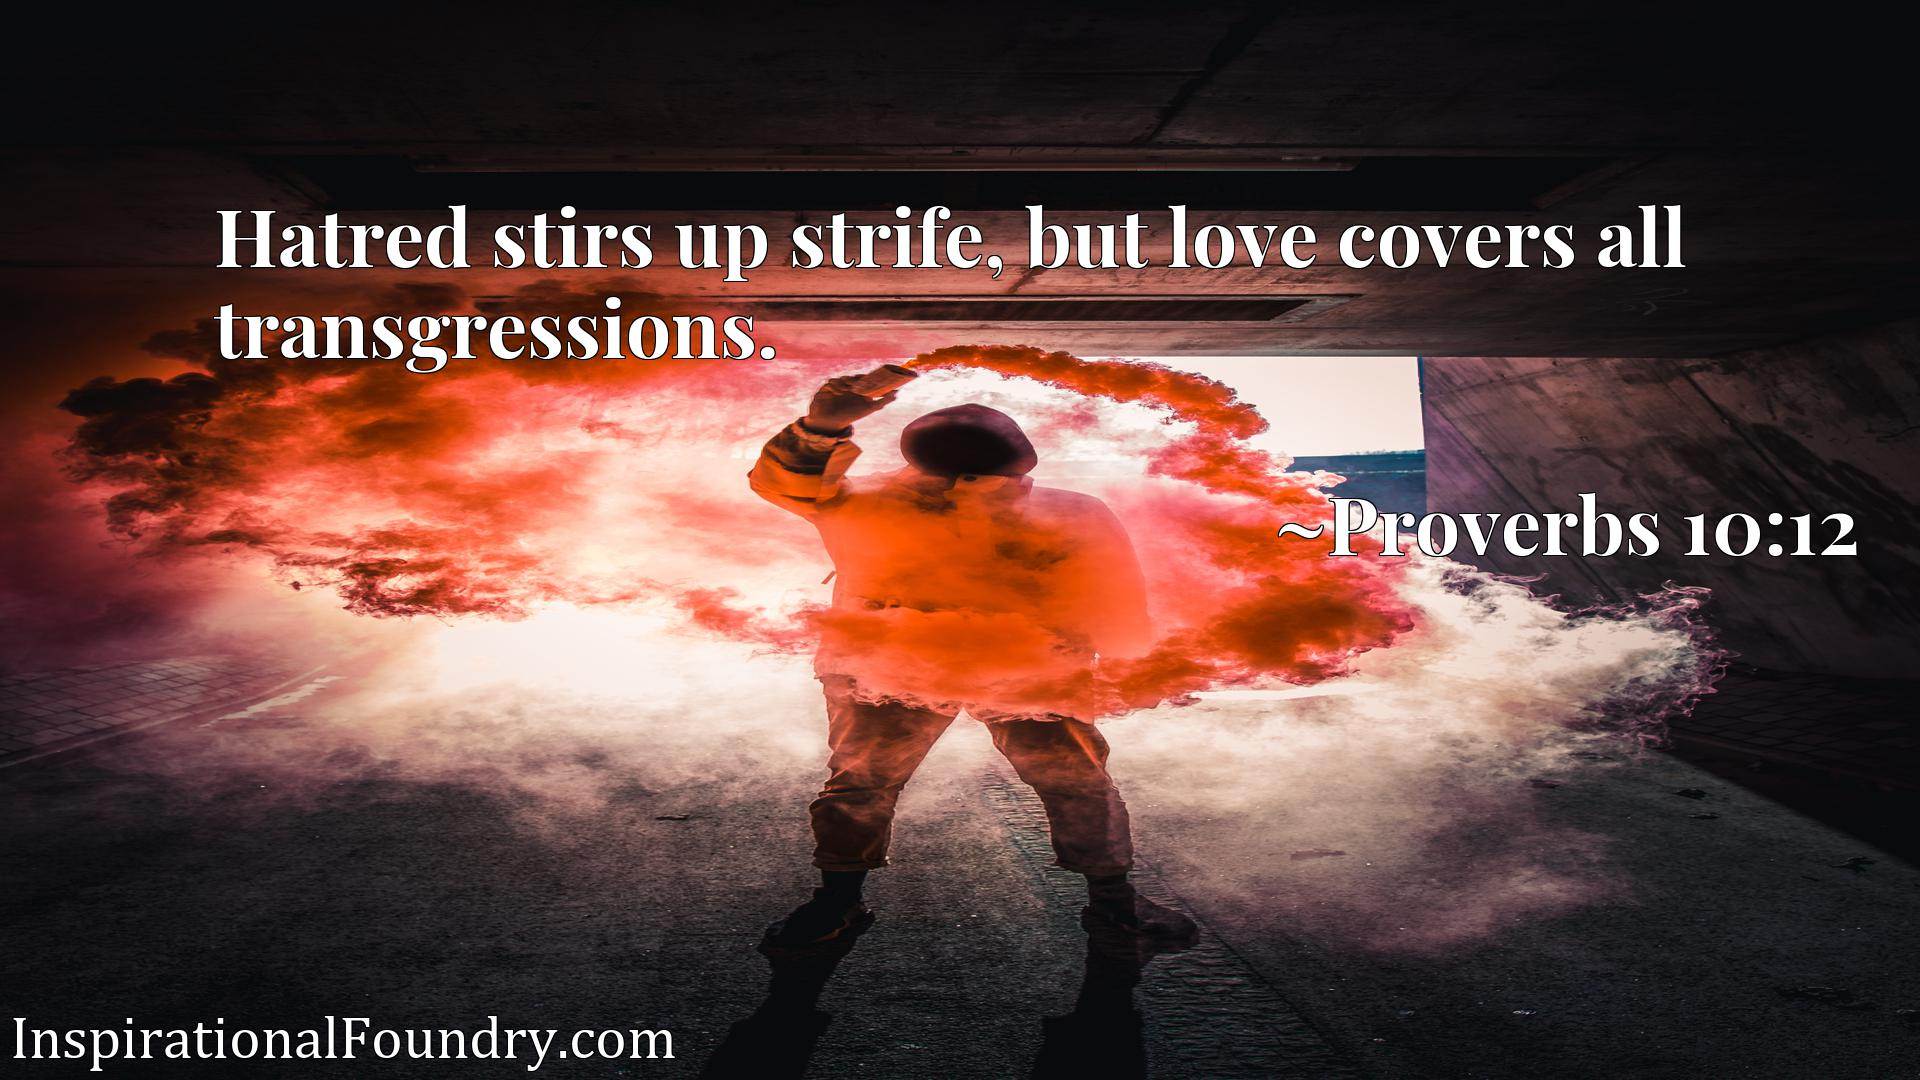 Hatred stirs up strife, but love covers all transgressions.